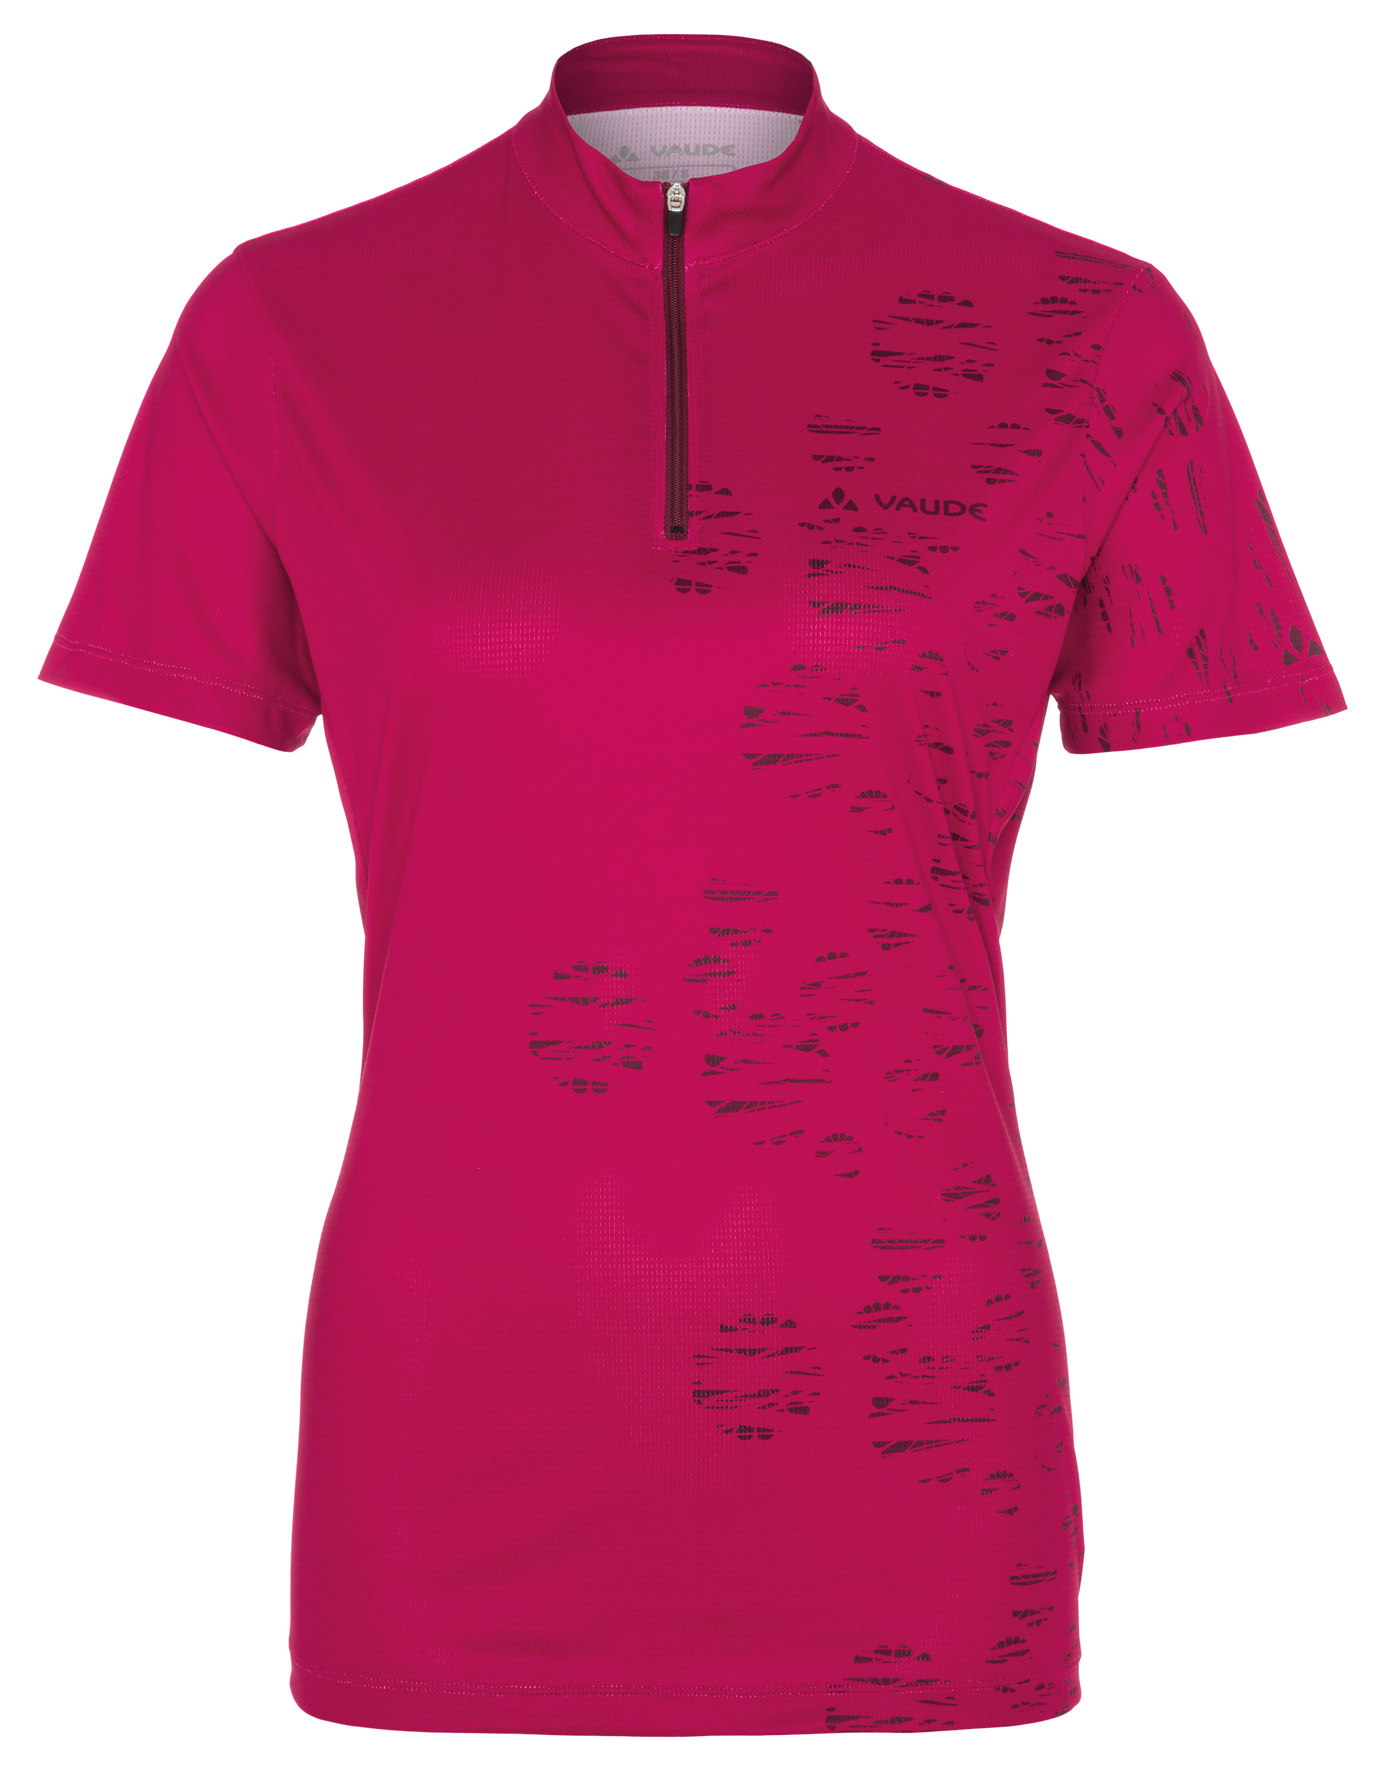 Women´s Tremalzo Shirt grenadine Größe 36 - schneider-sports